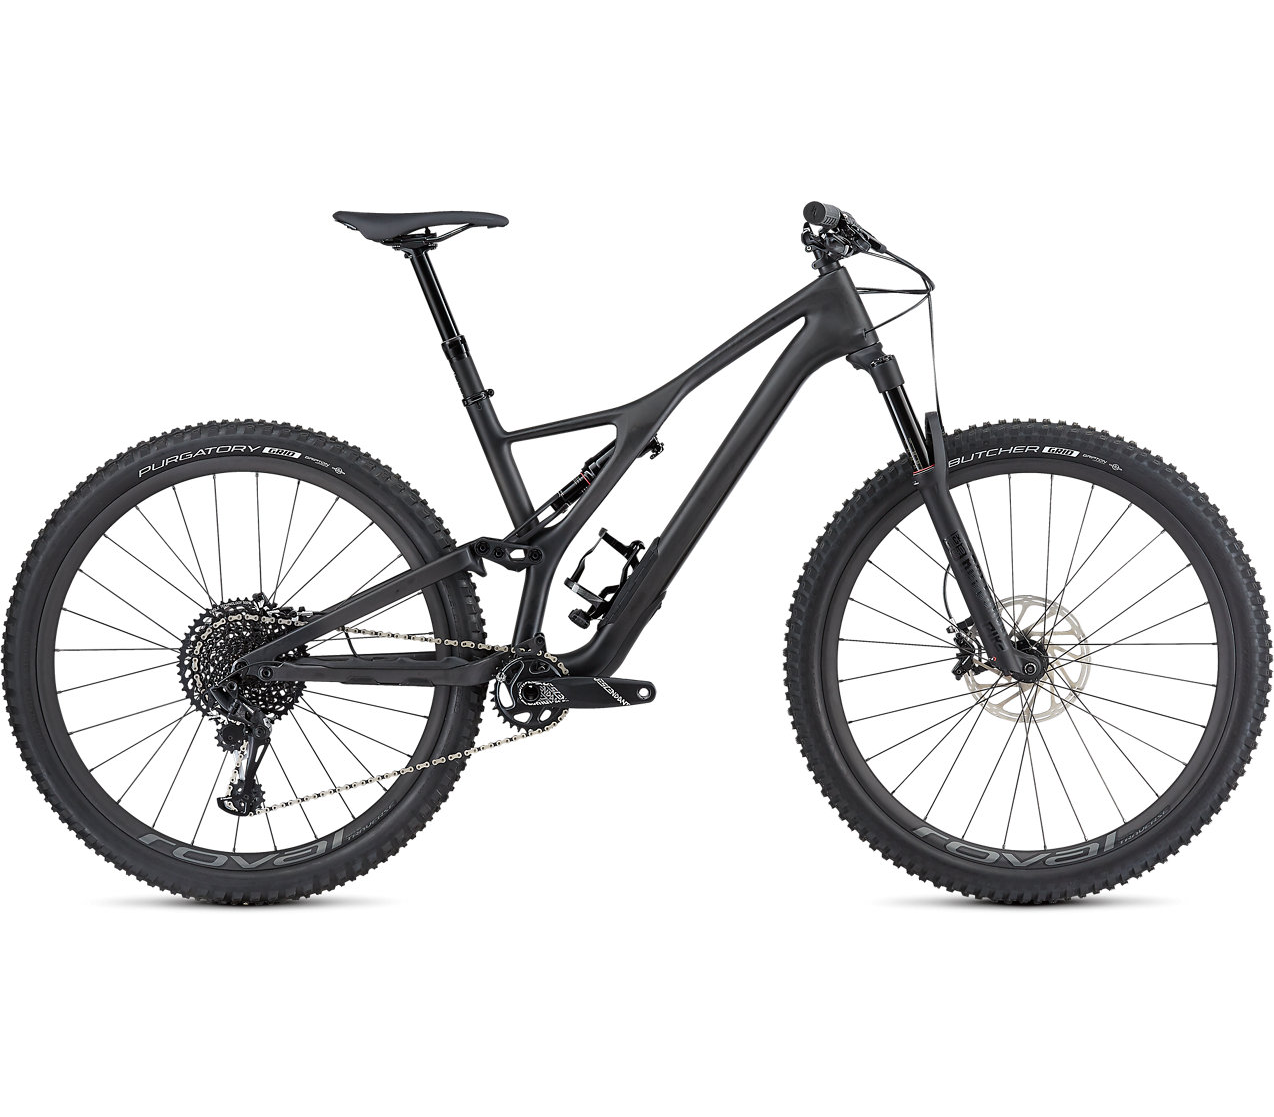 Specialized Stumpjumer ST Expert 29